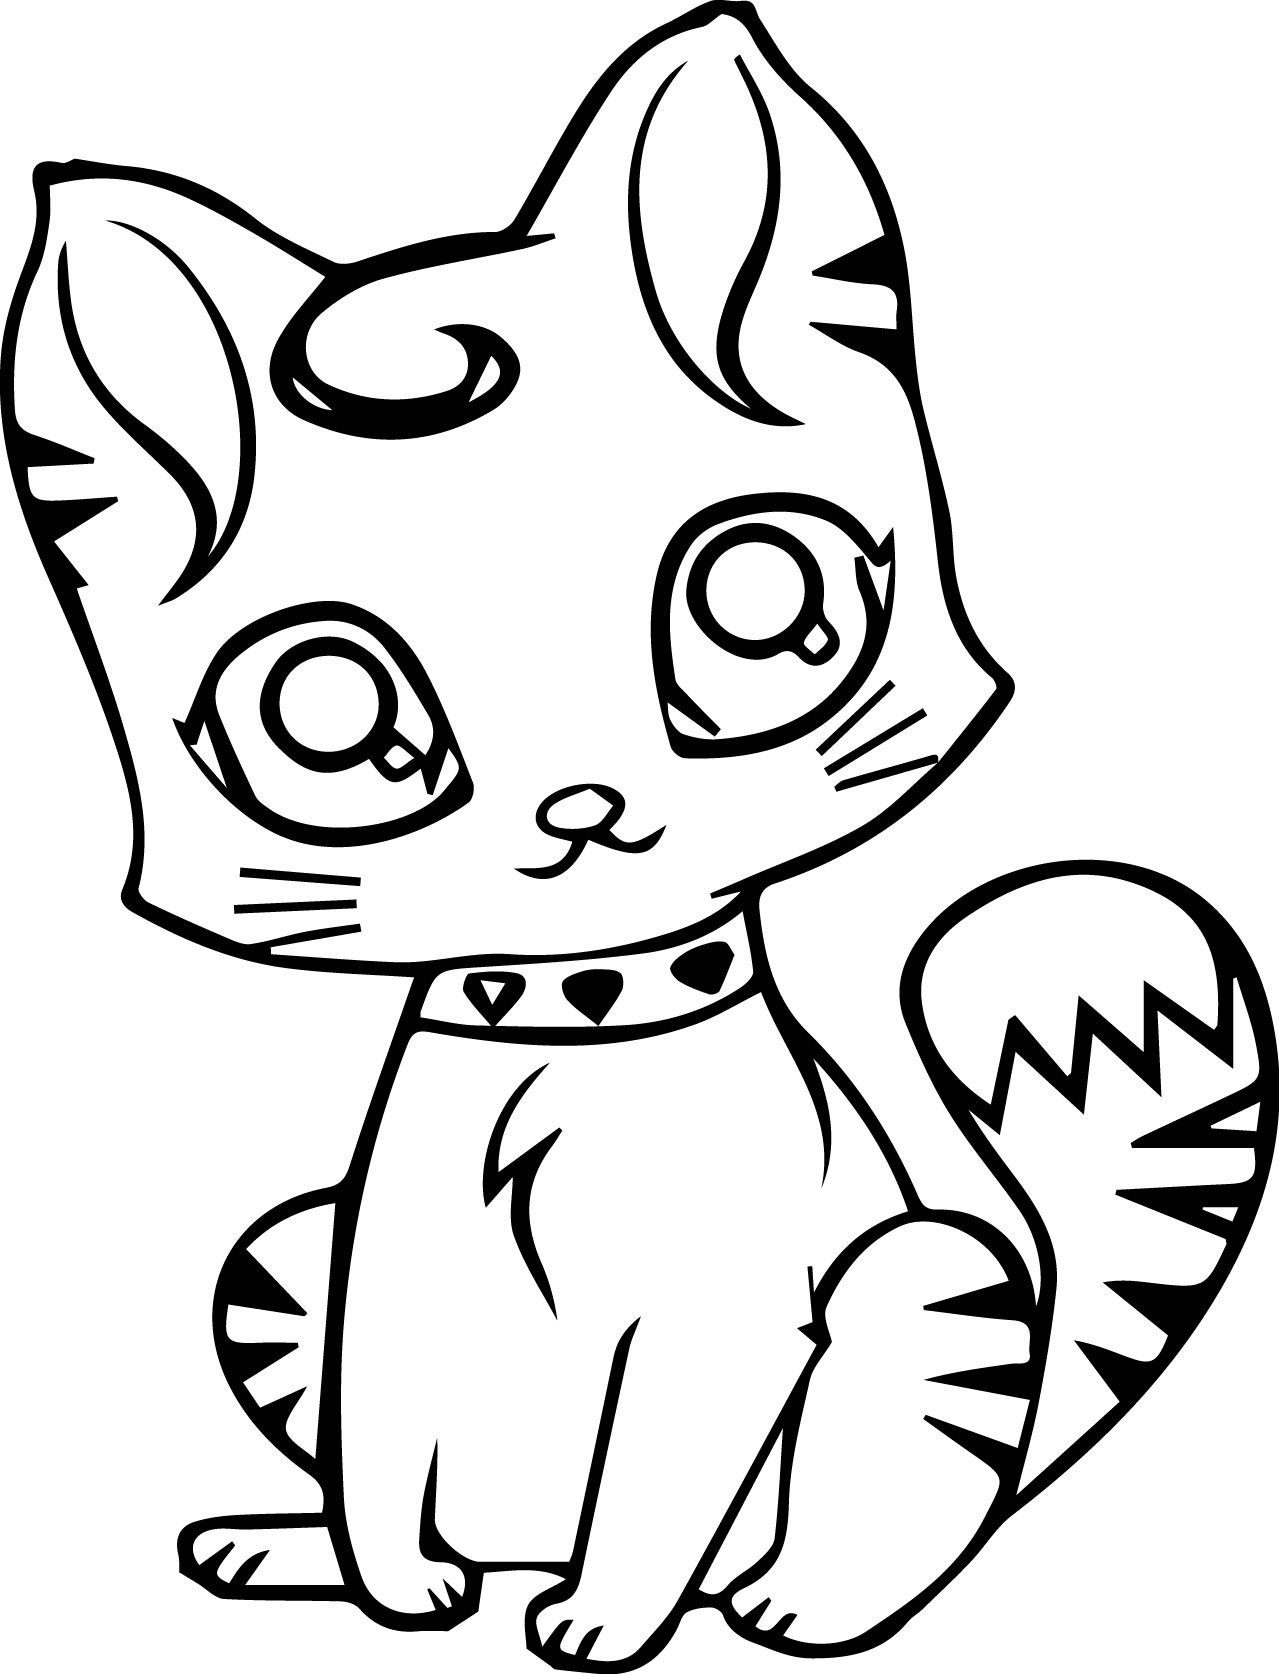 coloring page cat free printable cat coloring pages for kids cat page coloring